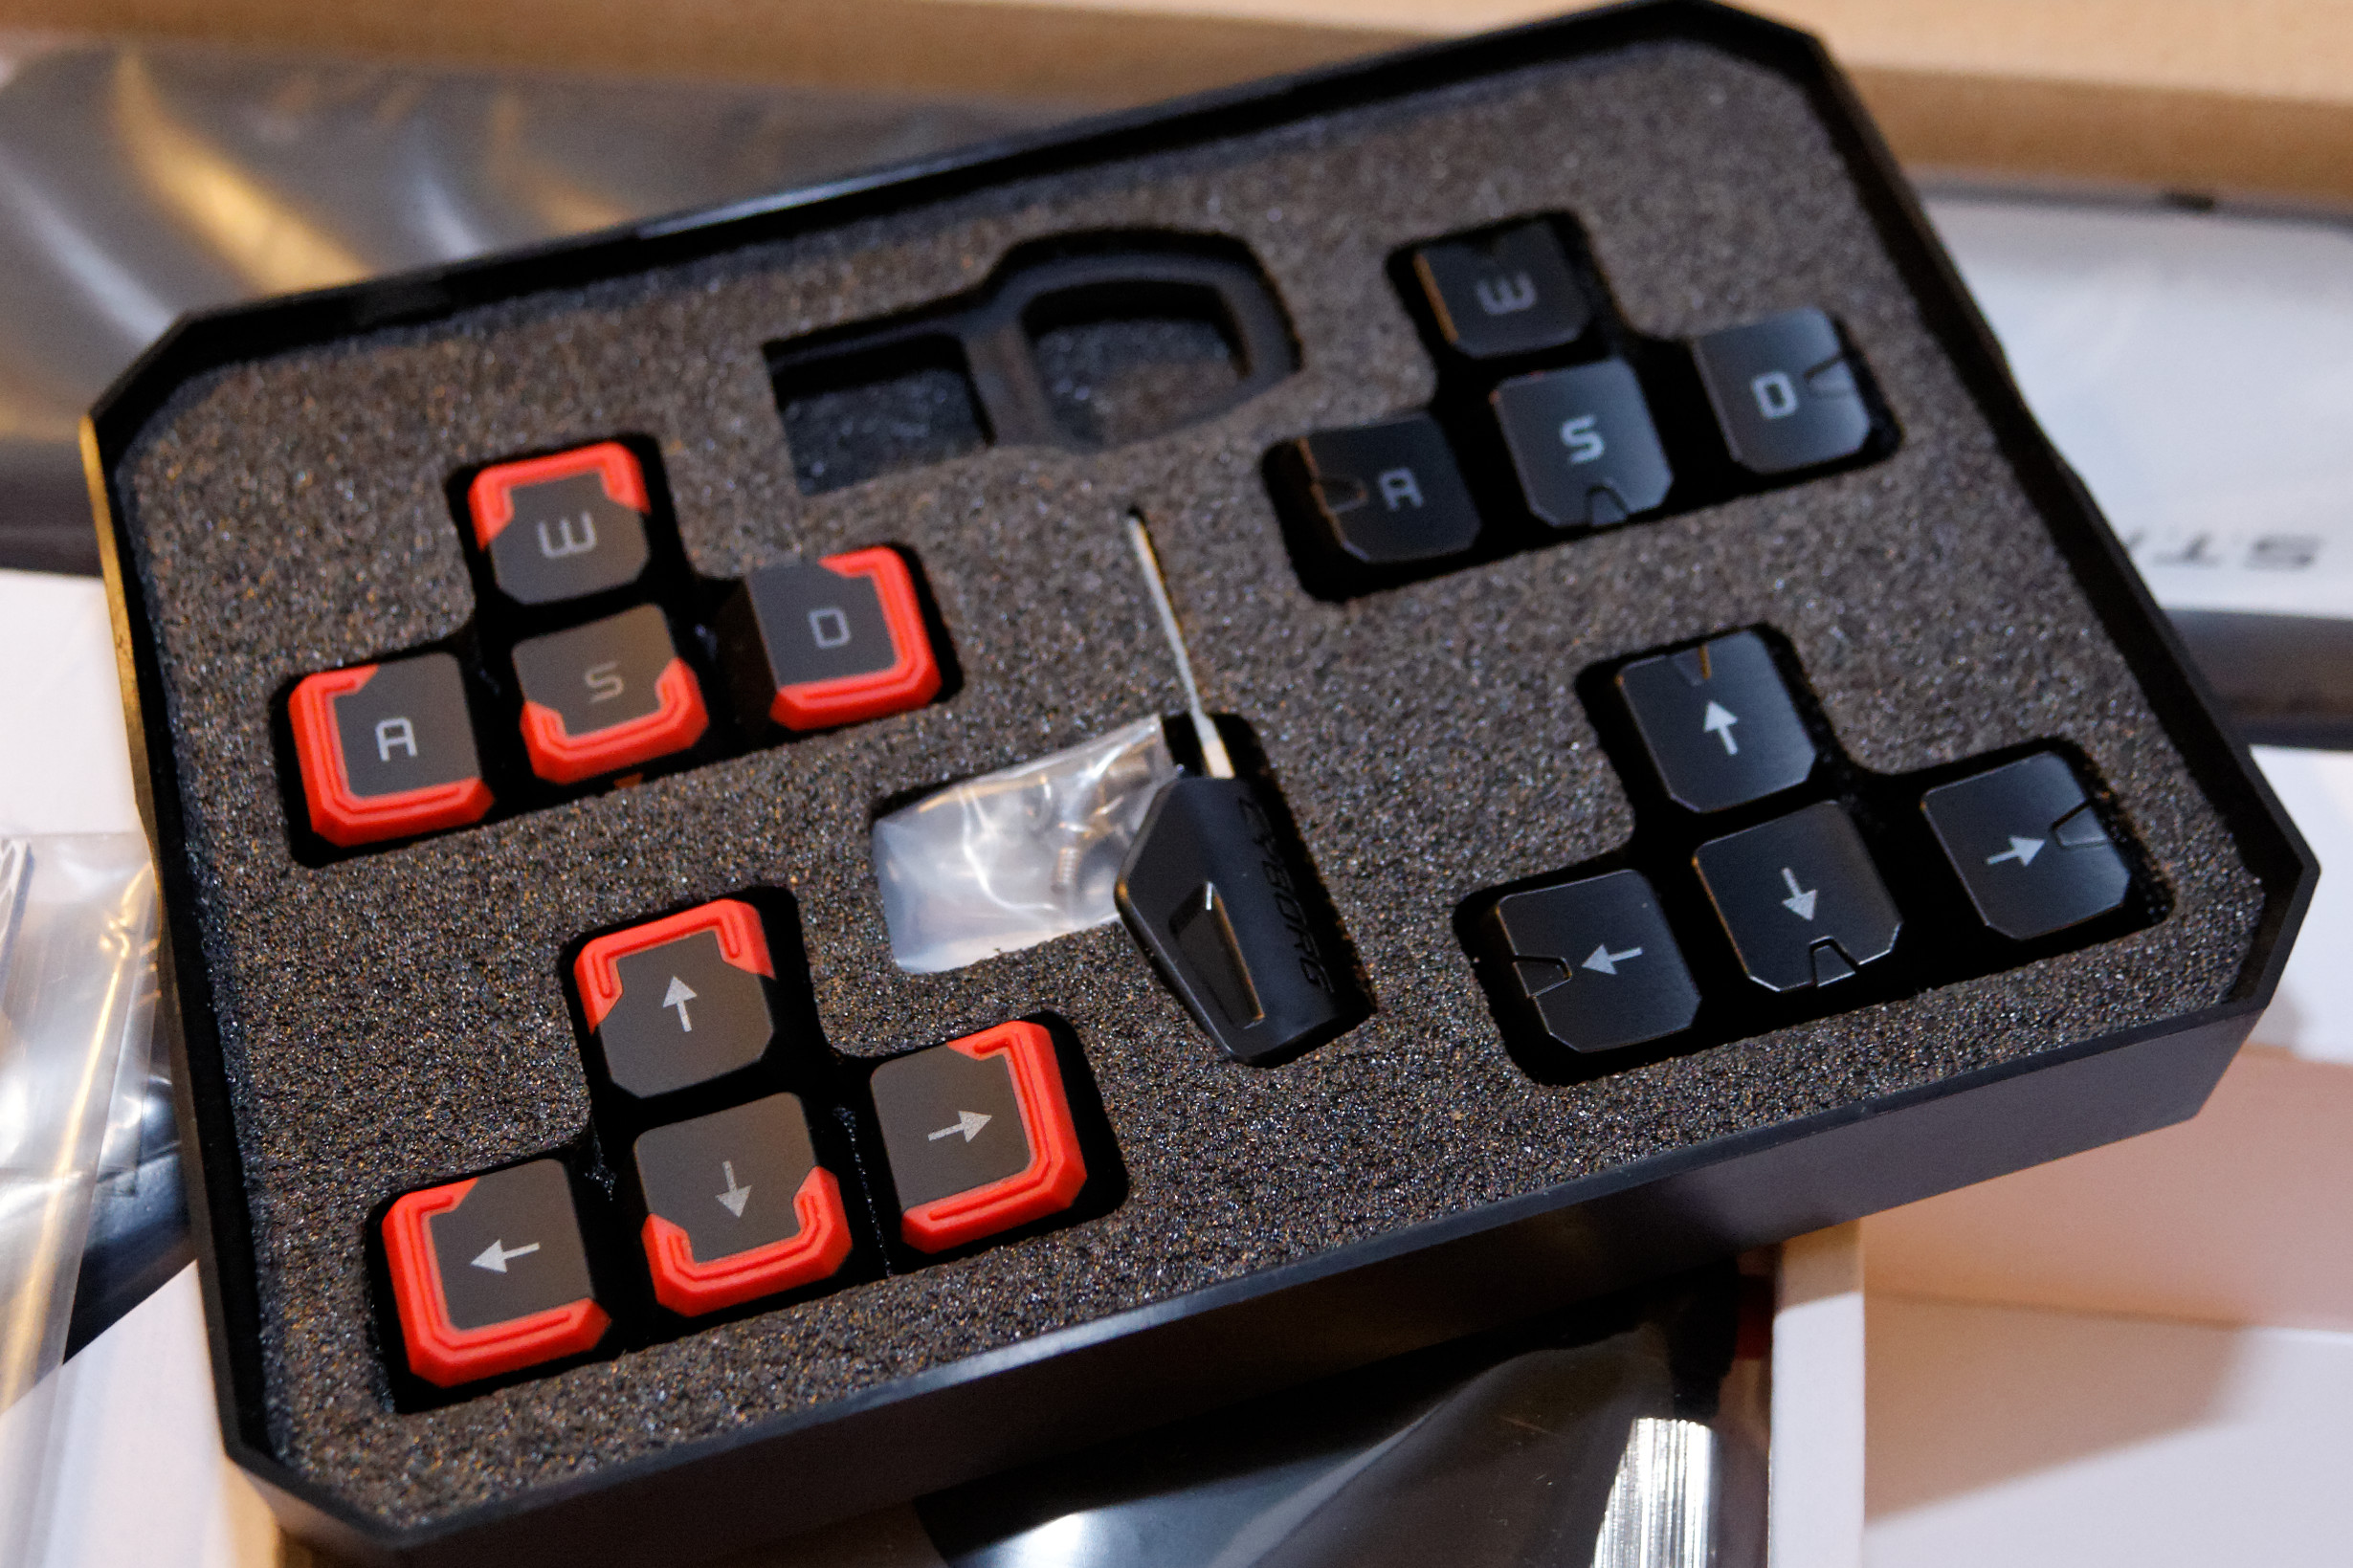 Mad Catz Strike7 Gaming Keyboard Is Totally Over The Top Madcatz Strikete Tournament Edition Strike 7 Keycaps